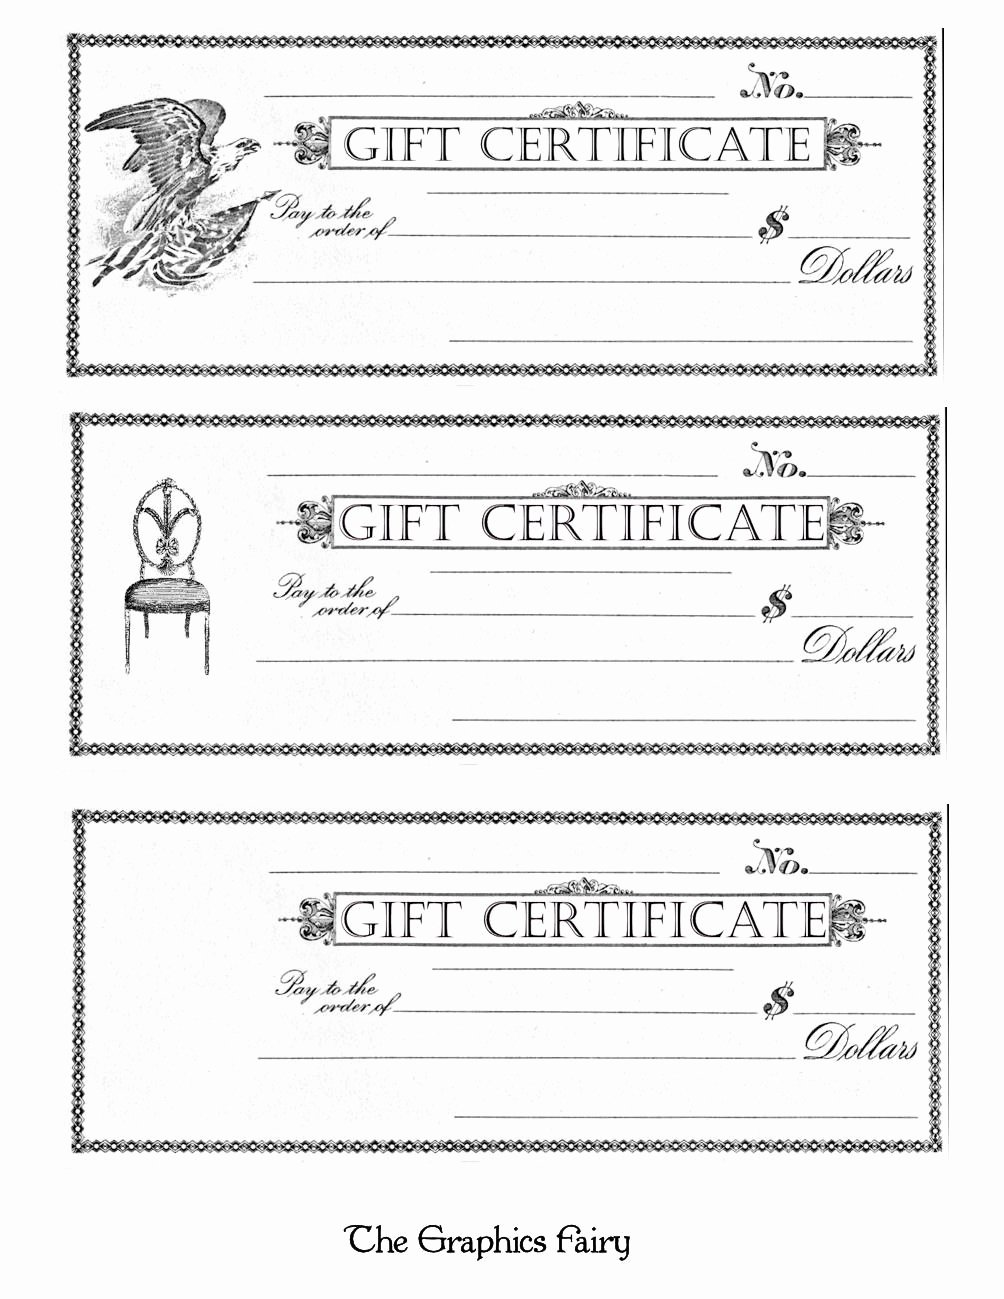 Printable Gift Certificates Templates Free Lovely Free Printable Gift Certificates the Graphics Fairy